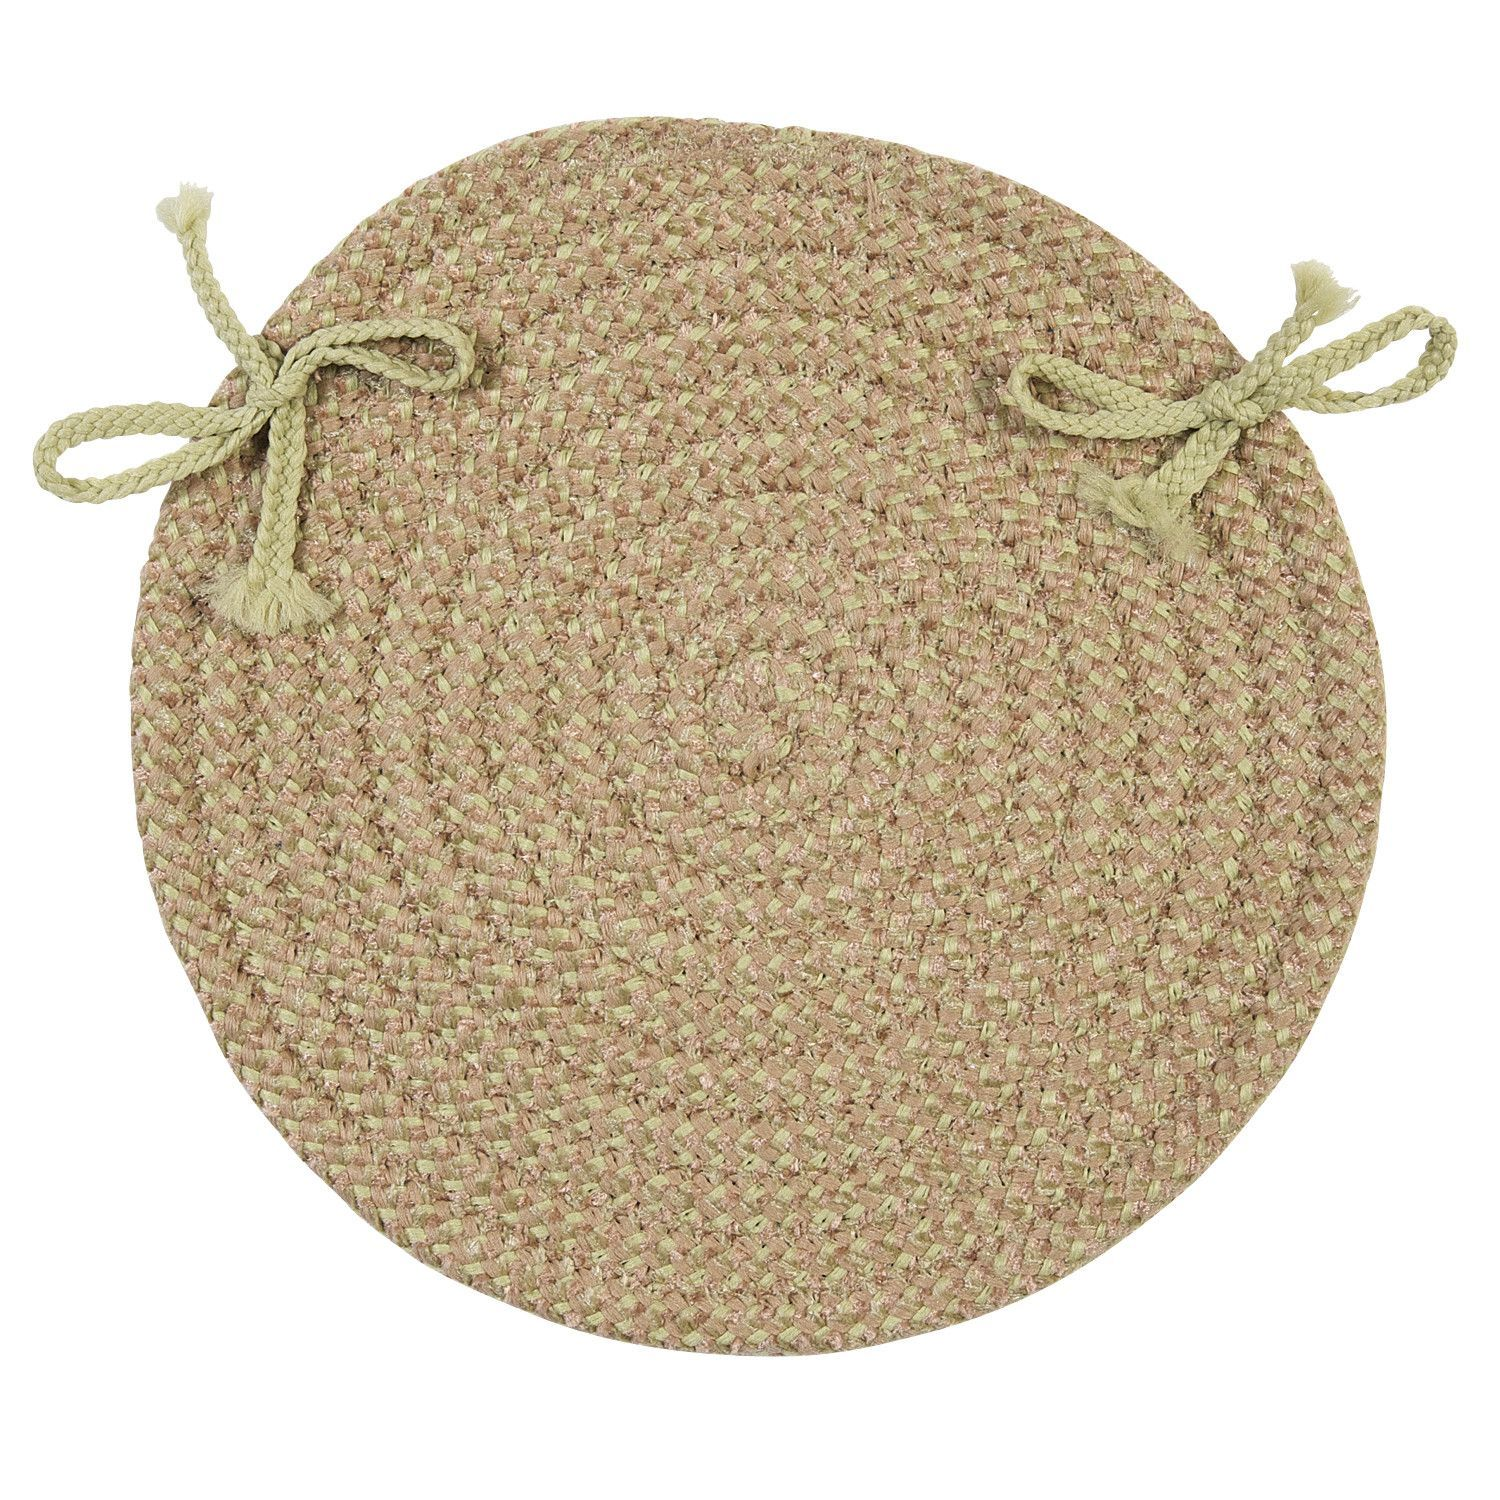 Awesome Softex Check Indoor Outdoor Round Braided Chair Pad, Celery Green U0026 Tan